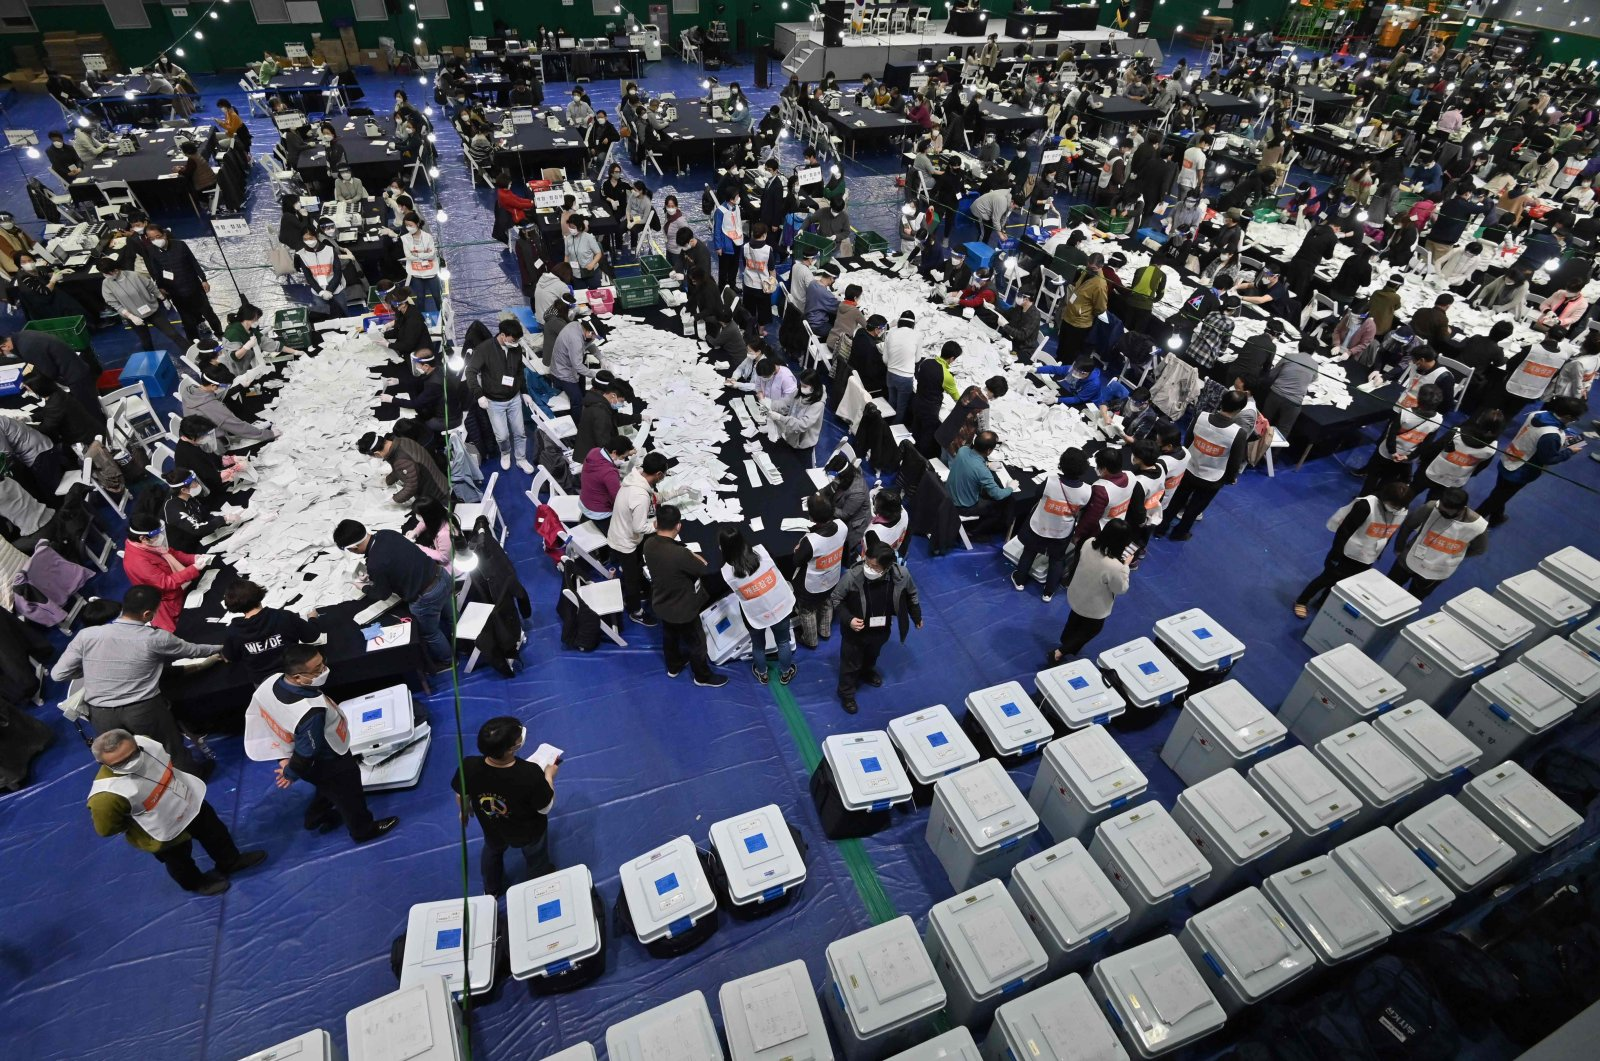 Election officials sort voting papers for ballot counting in the parliamentary elections at a gymnasium in Seoul, South Korea, April 15, 2020. (AFP Photo)